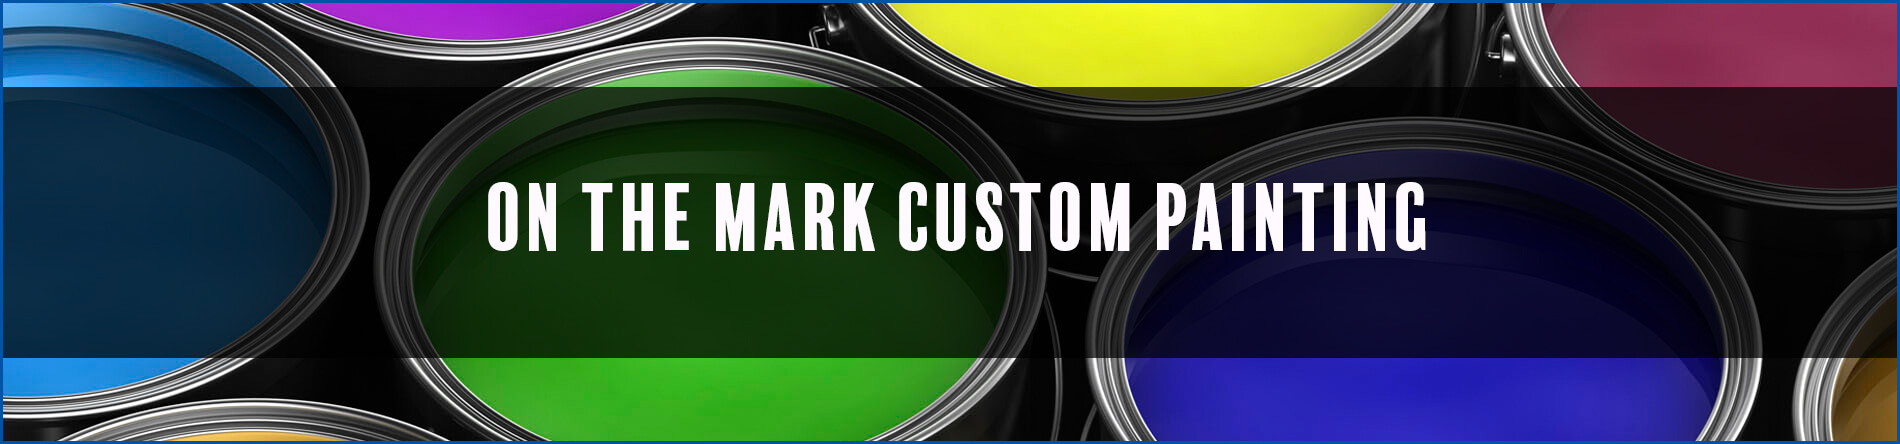 On The Mark Custom Painting is a Painting Company in South Brunswick Township, NJ